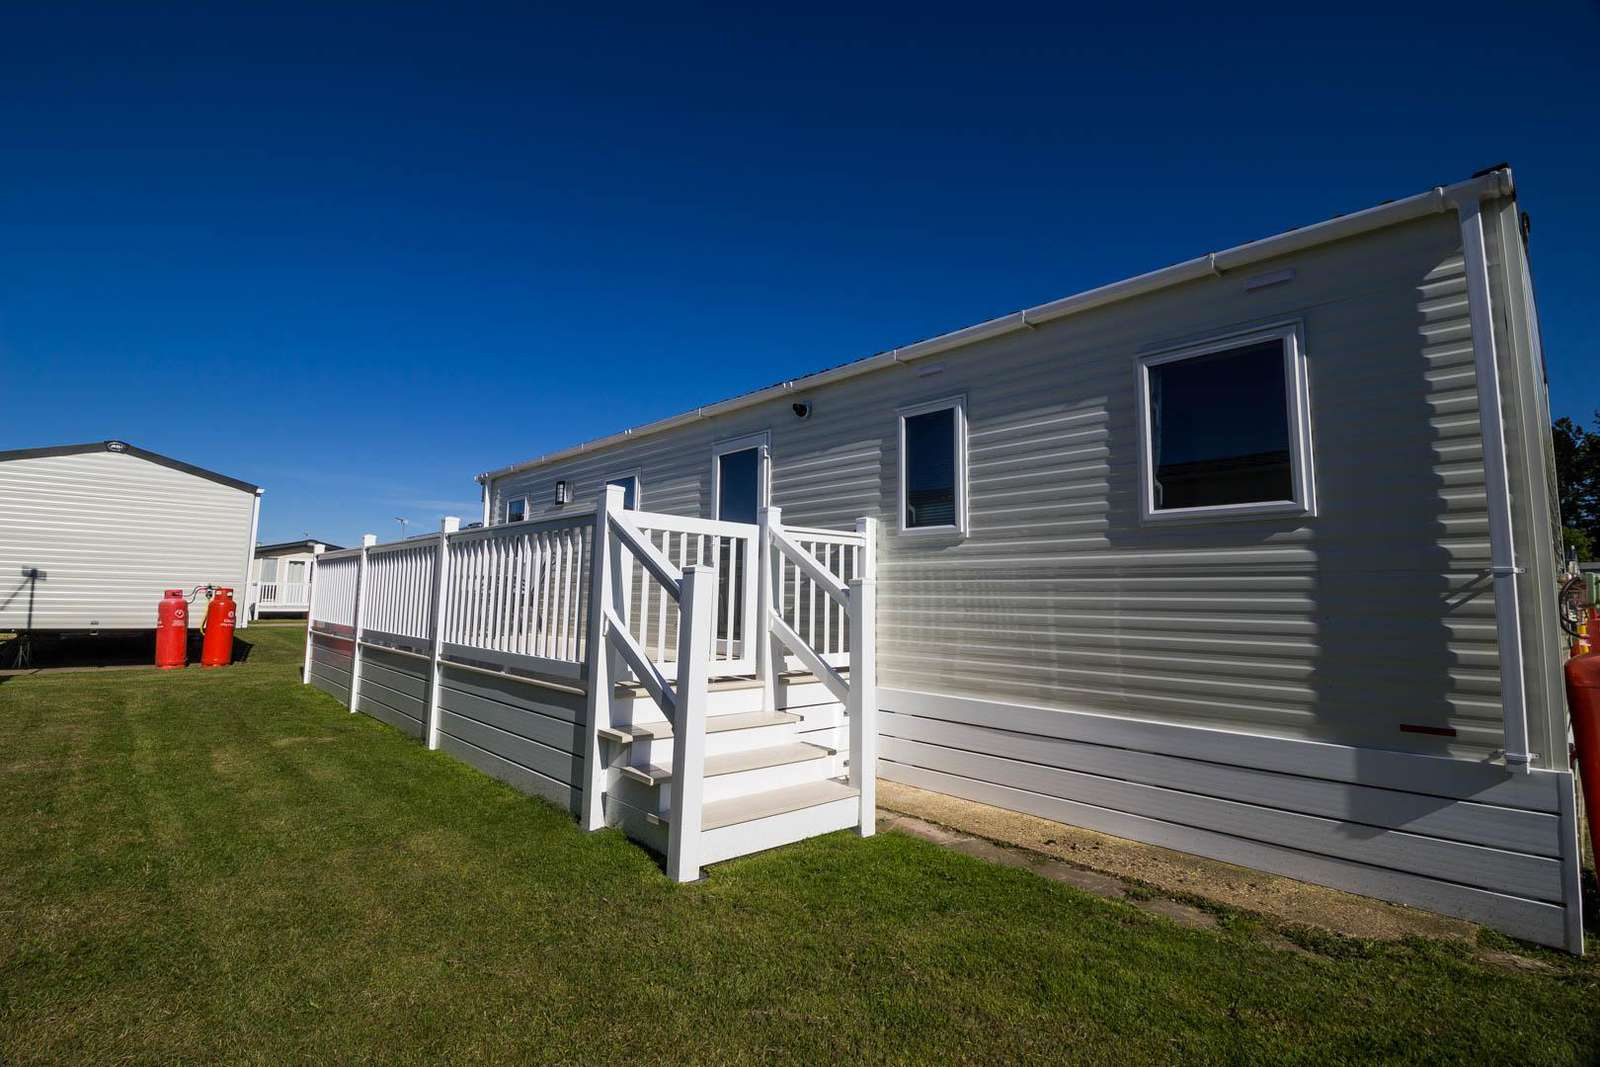 20183BS – Broadland Sands, 3 bed, 8 berth caravan with decking and free WiFi. Diamond-Plus rated. - property